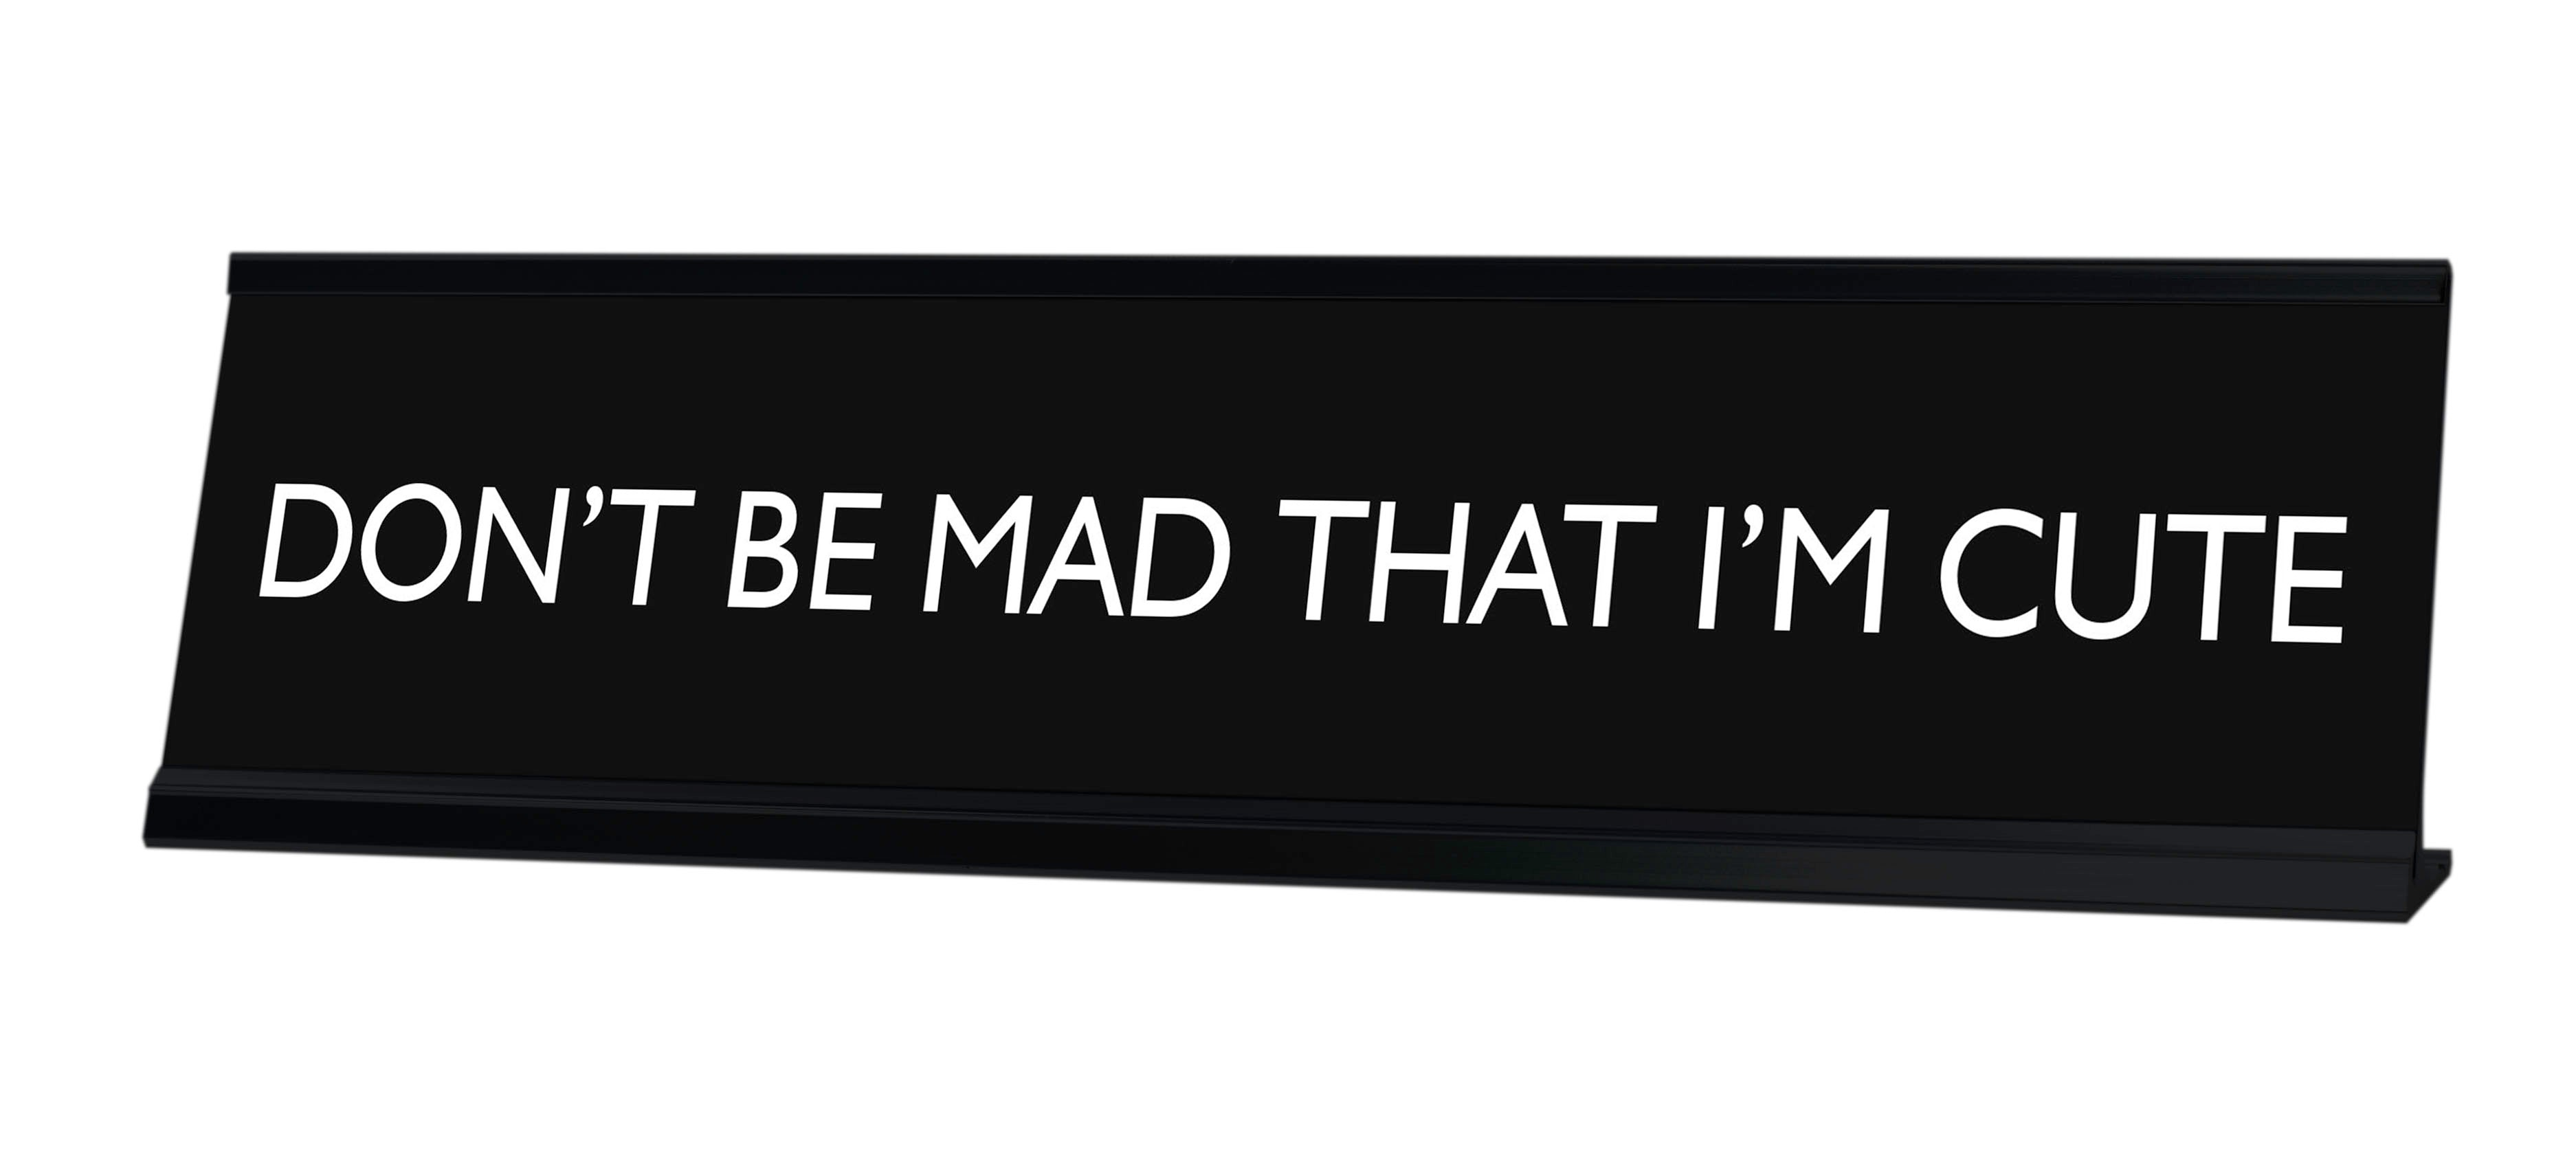 DON'T BE MAD THAT I'M CUTE Novelty Desk Sign